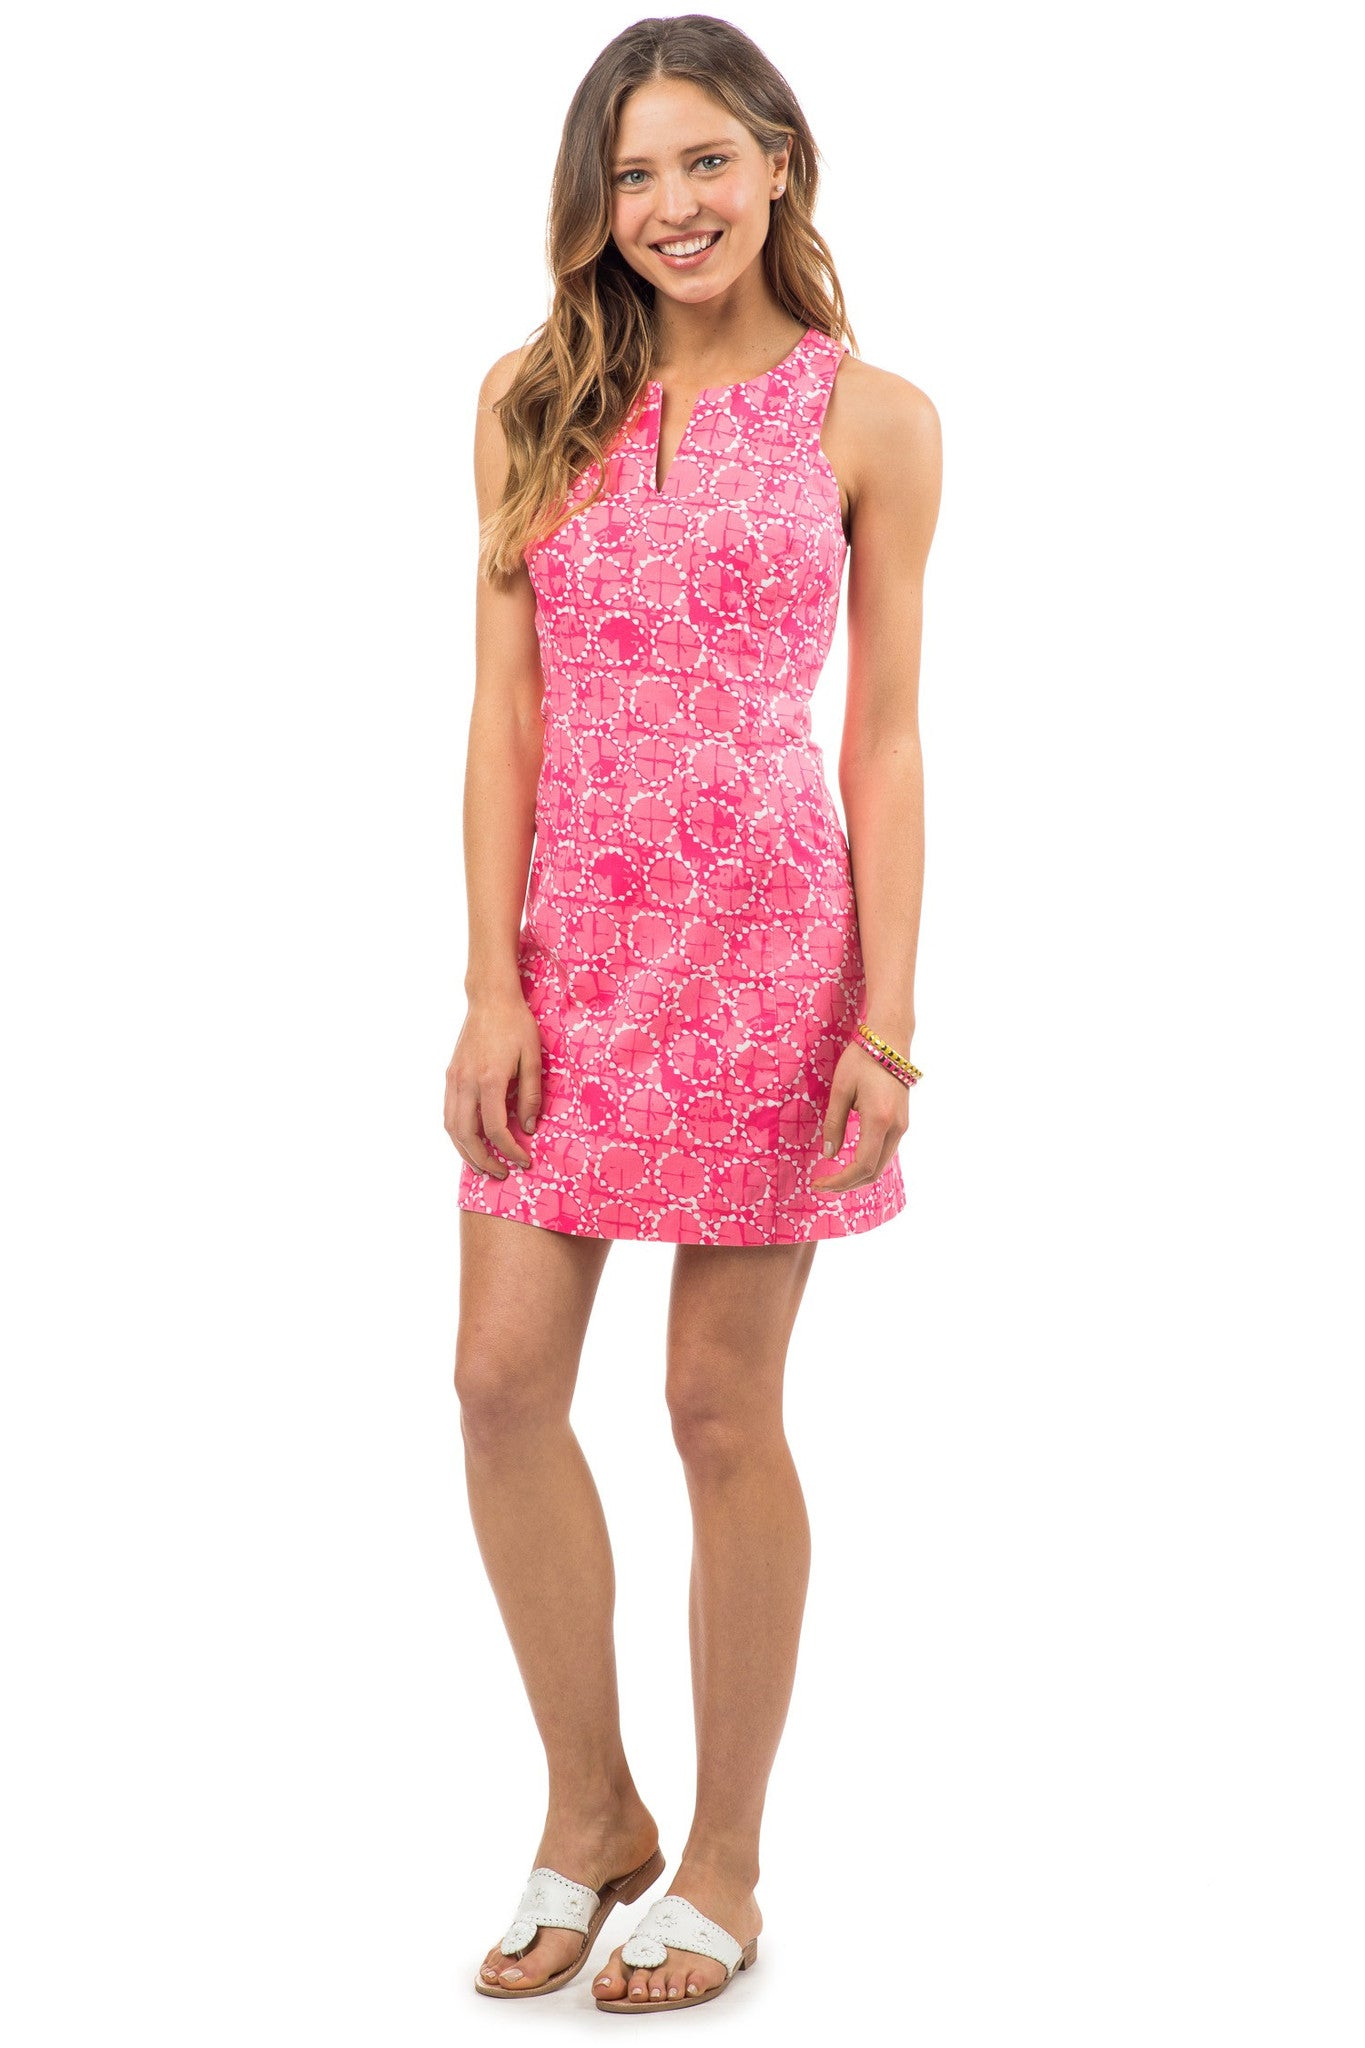 Southern Tide Sand Dollar Print Dress - Pink Front View